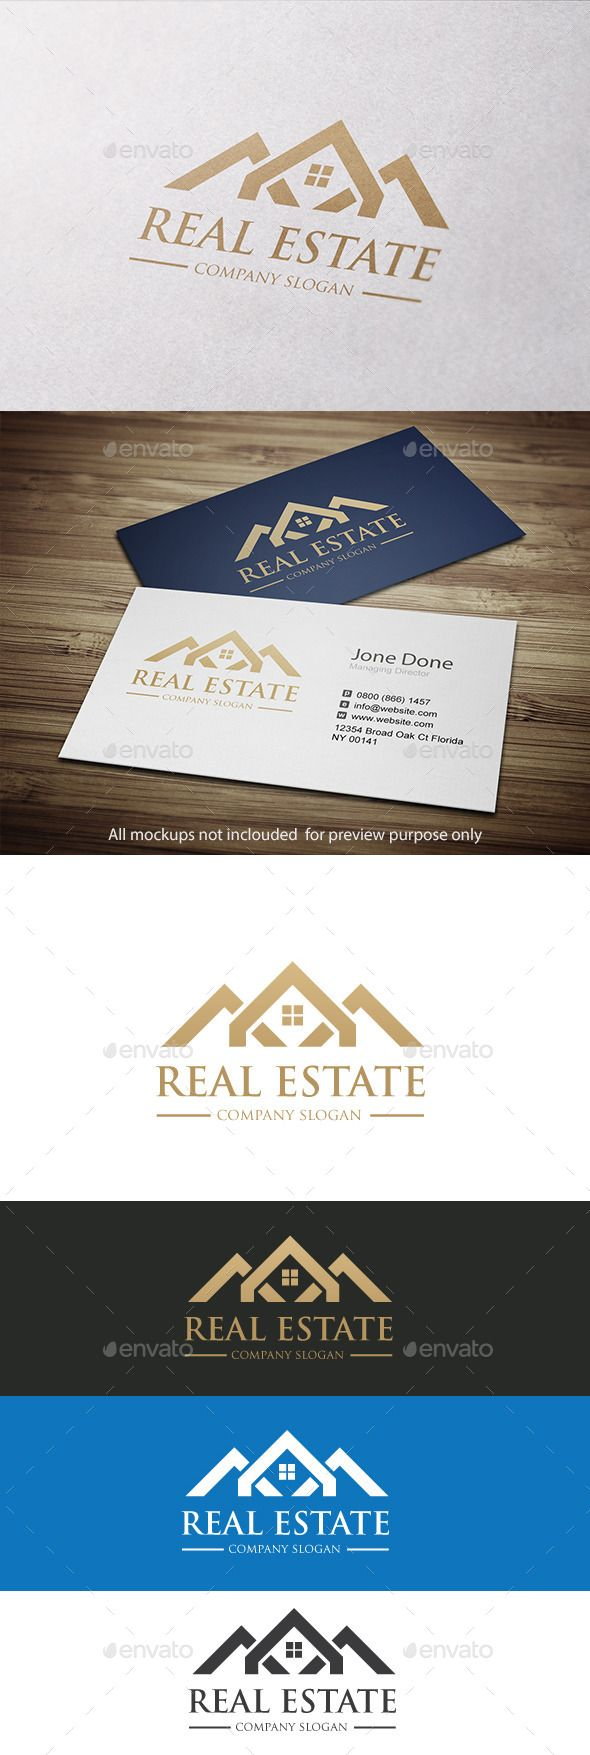 Real Estate Logo Template #design #logotype Download: http://graphicriver.net/item/real-estate/11097915?ref=ksioks